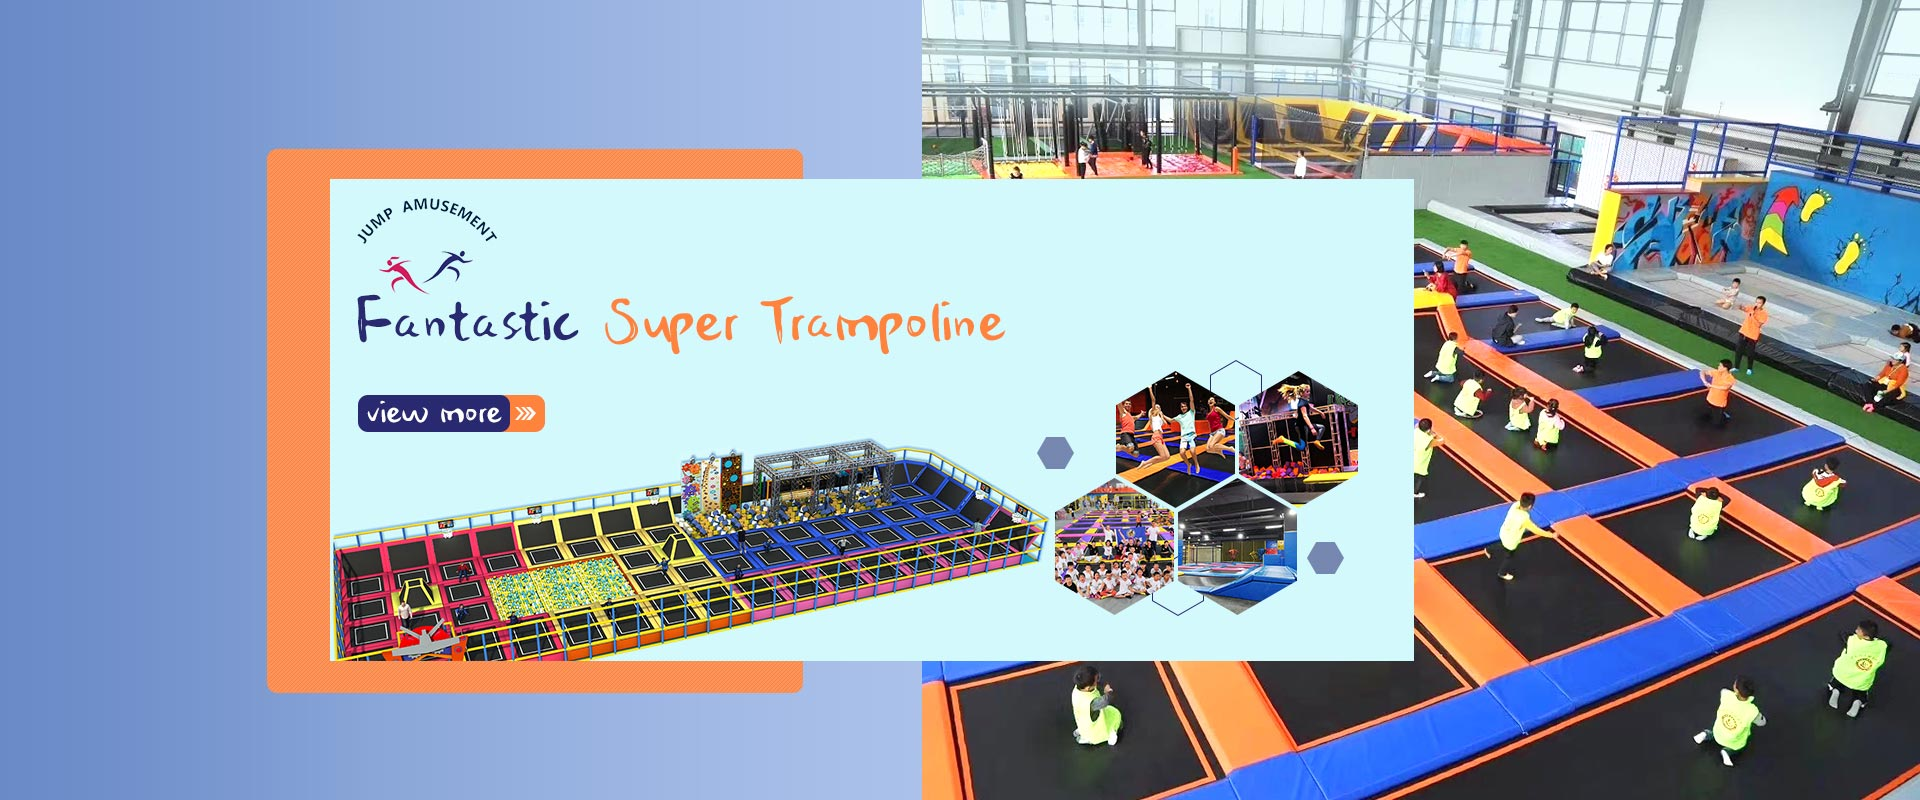 Fantastic Super trampolin